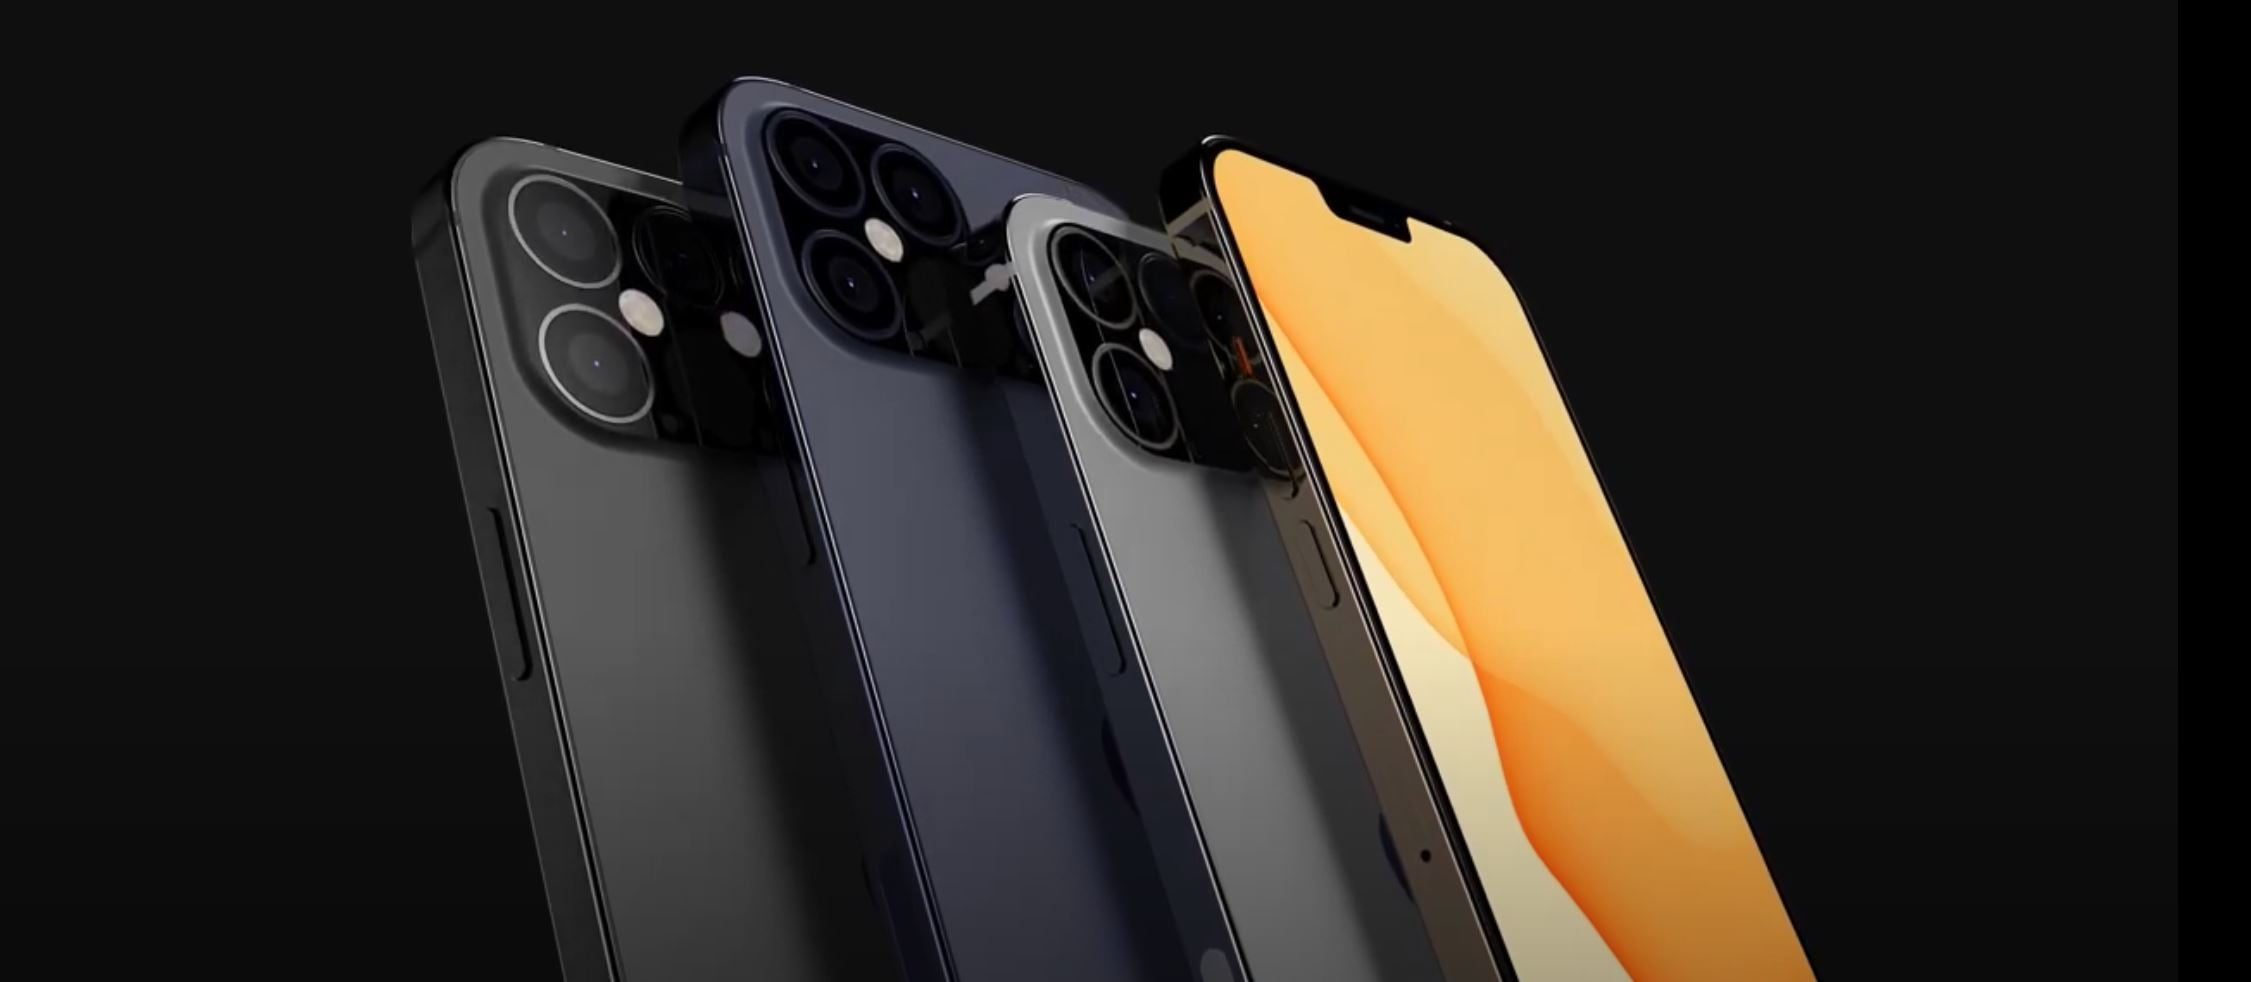 The 6.7-inch iPhone 12 Pro Max may be delayed until October